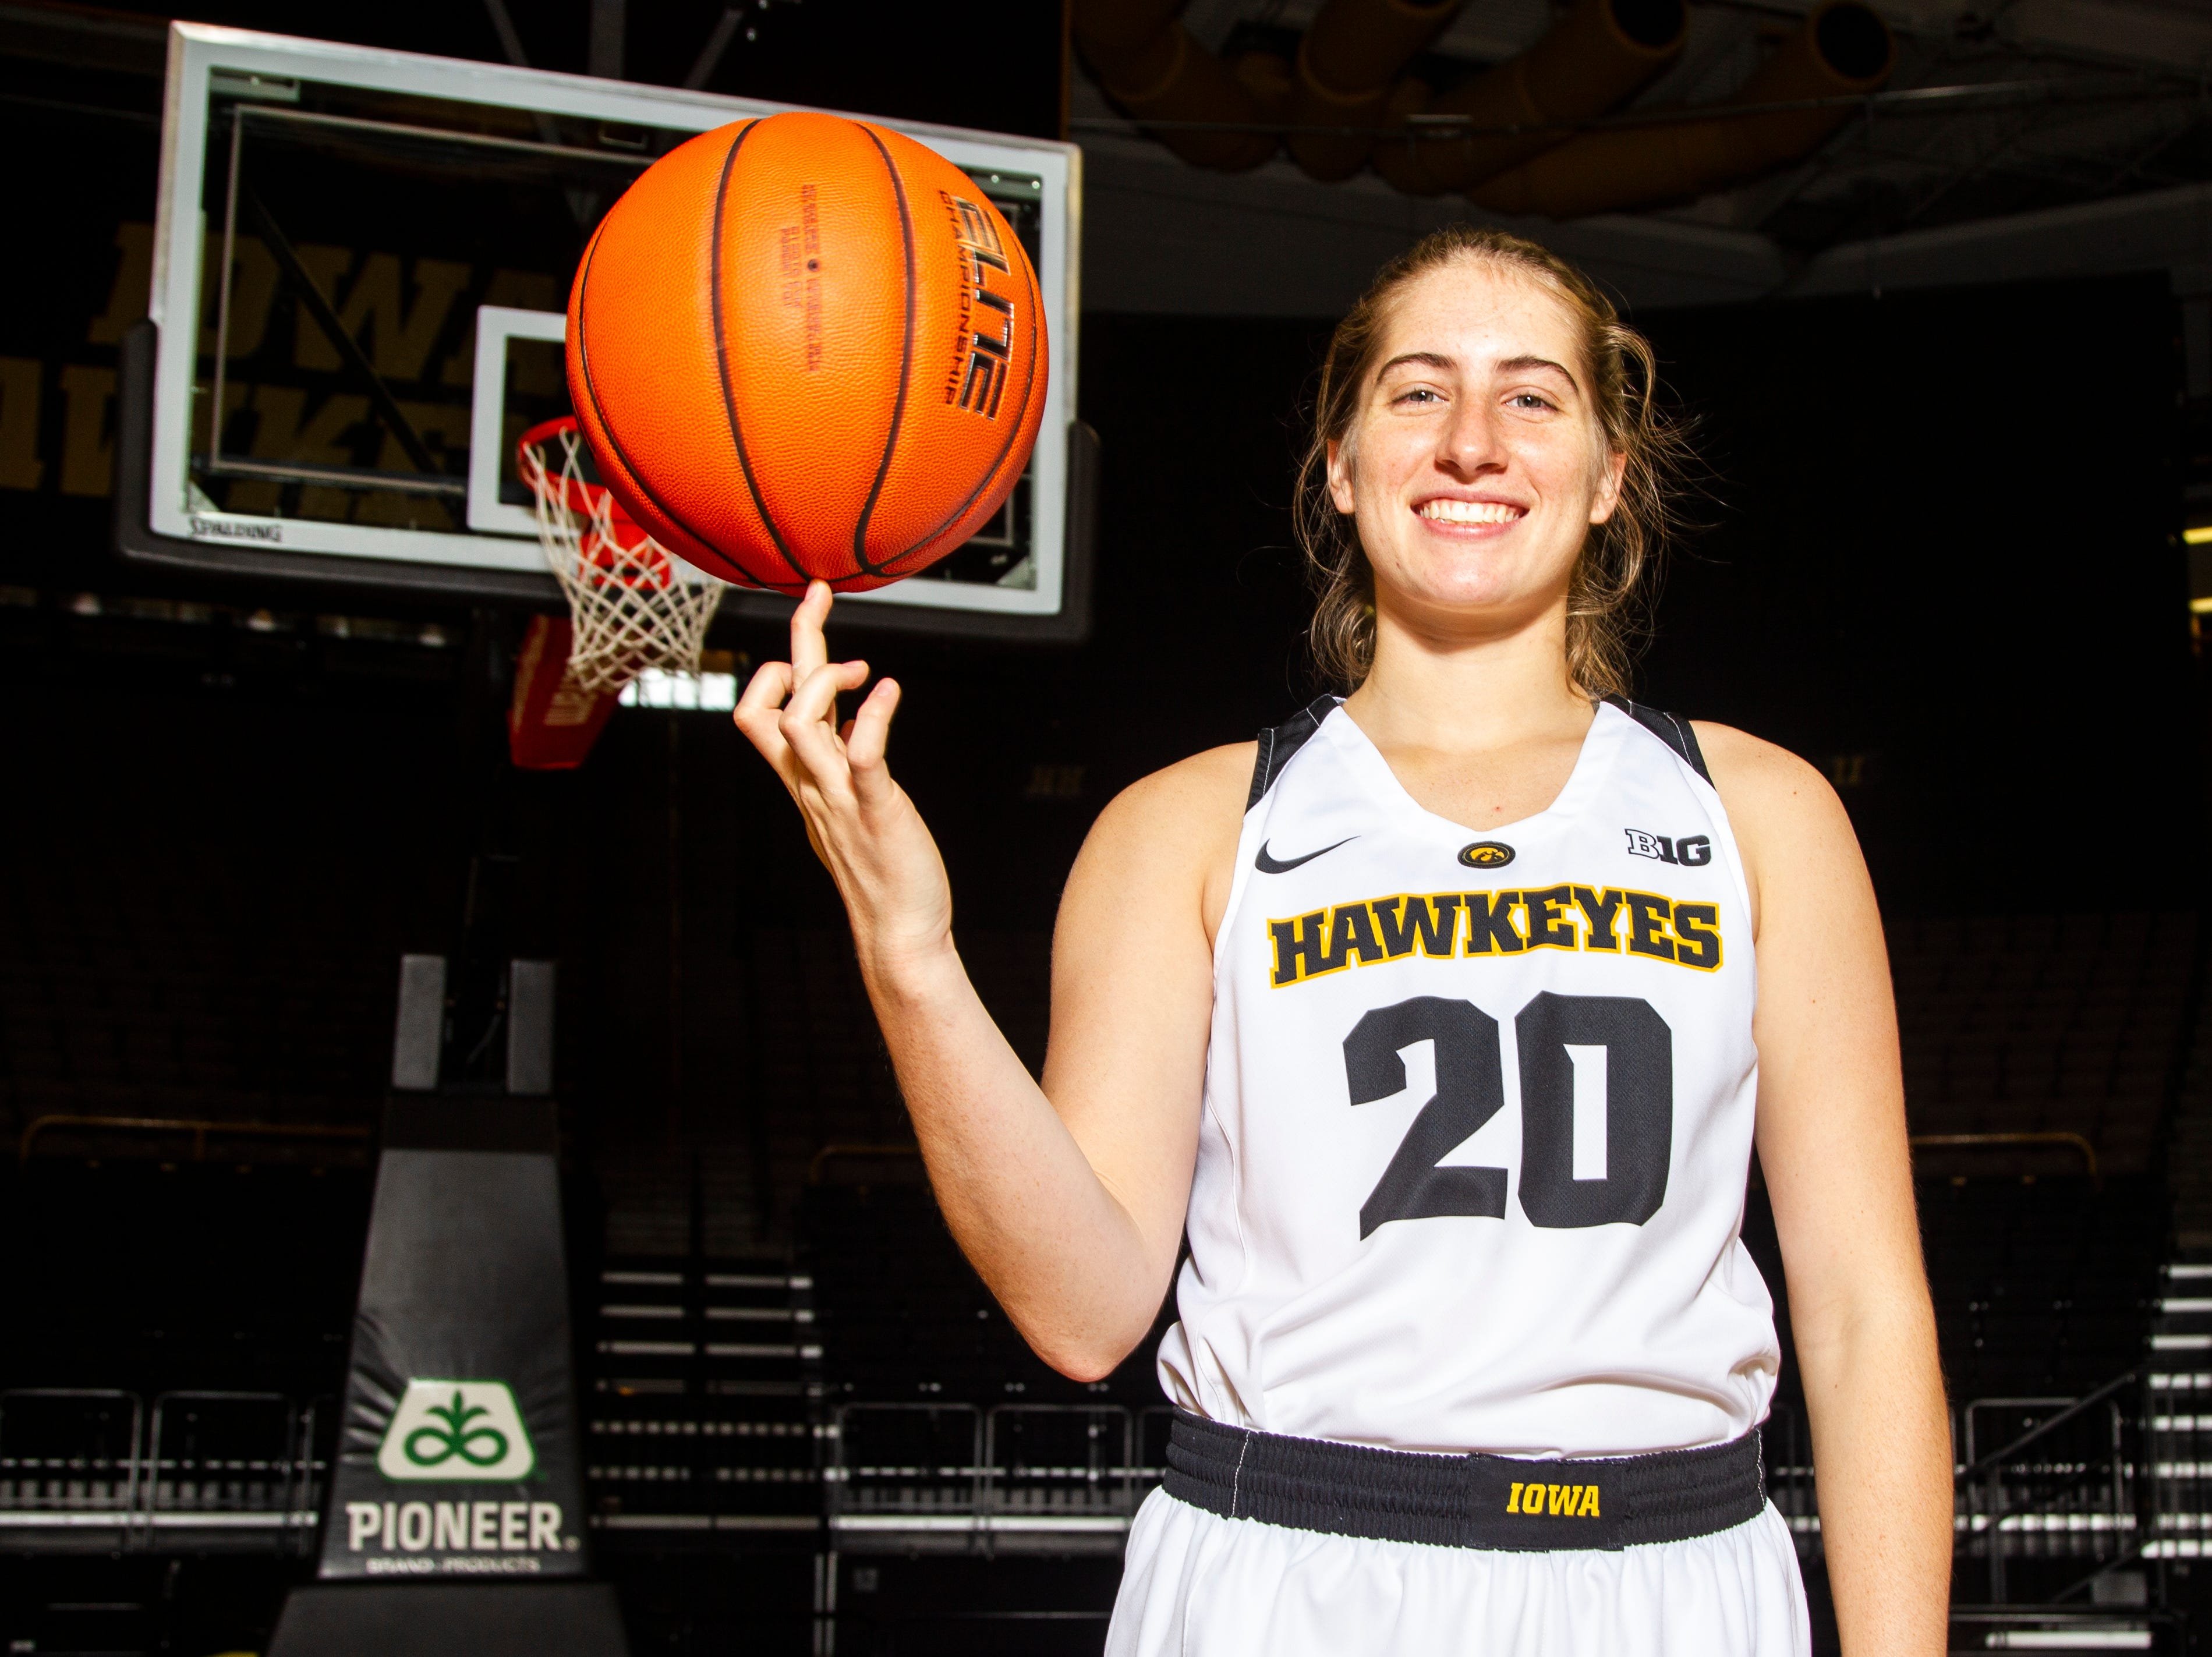 Iowa guard Kate Martin (20) poses for a portrait during Hawkeye women's basketball media day on Wednesday, Oct. 31, 2018, at Carver-Hawkeye Arena in Iowa City.